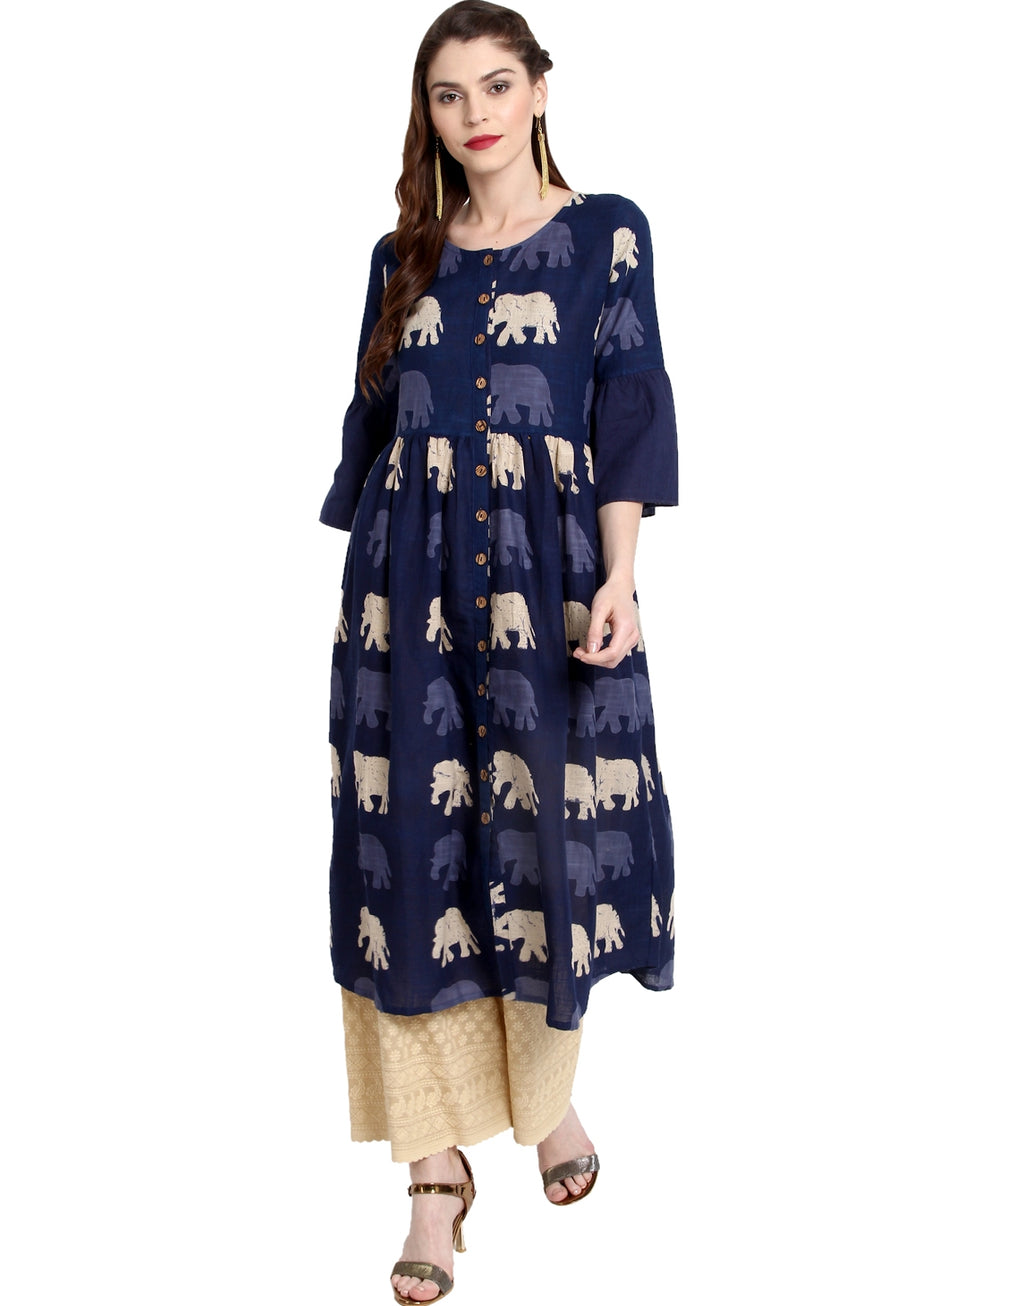 Firozi Color Cotton Readymade Party Wear Kurtis ( Sizes-36,38,40,42,44) Janasya Catlog SJ-10194